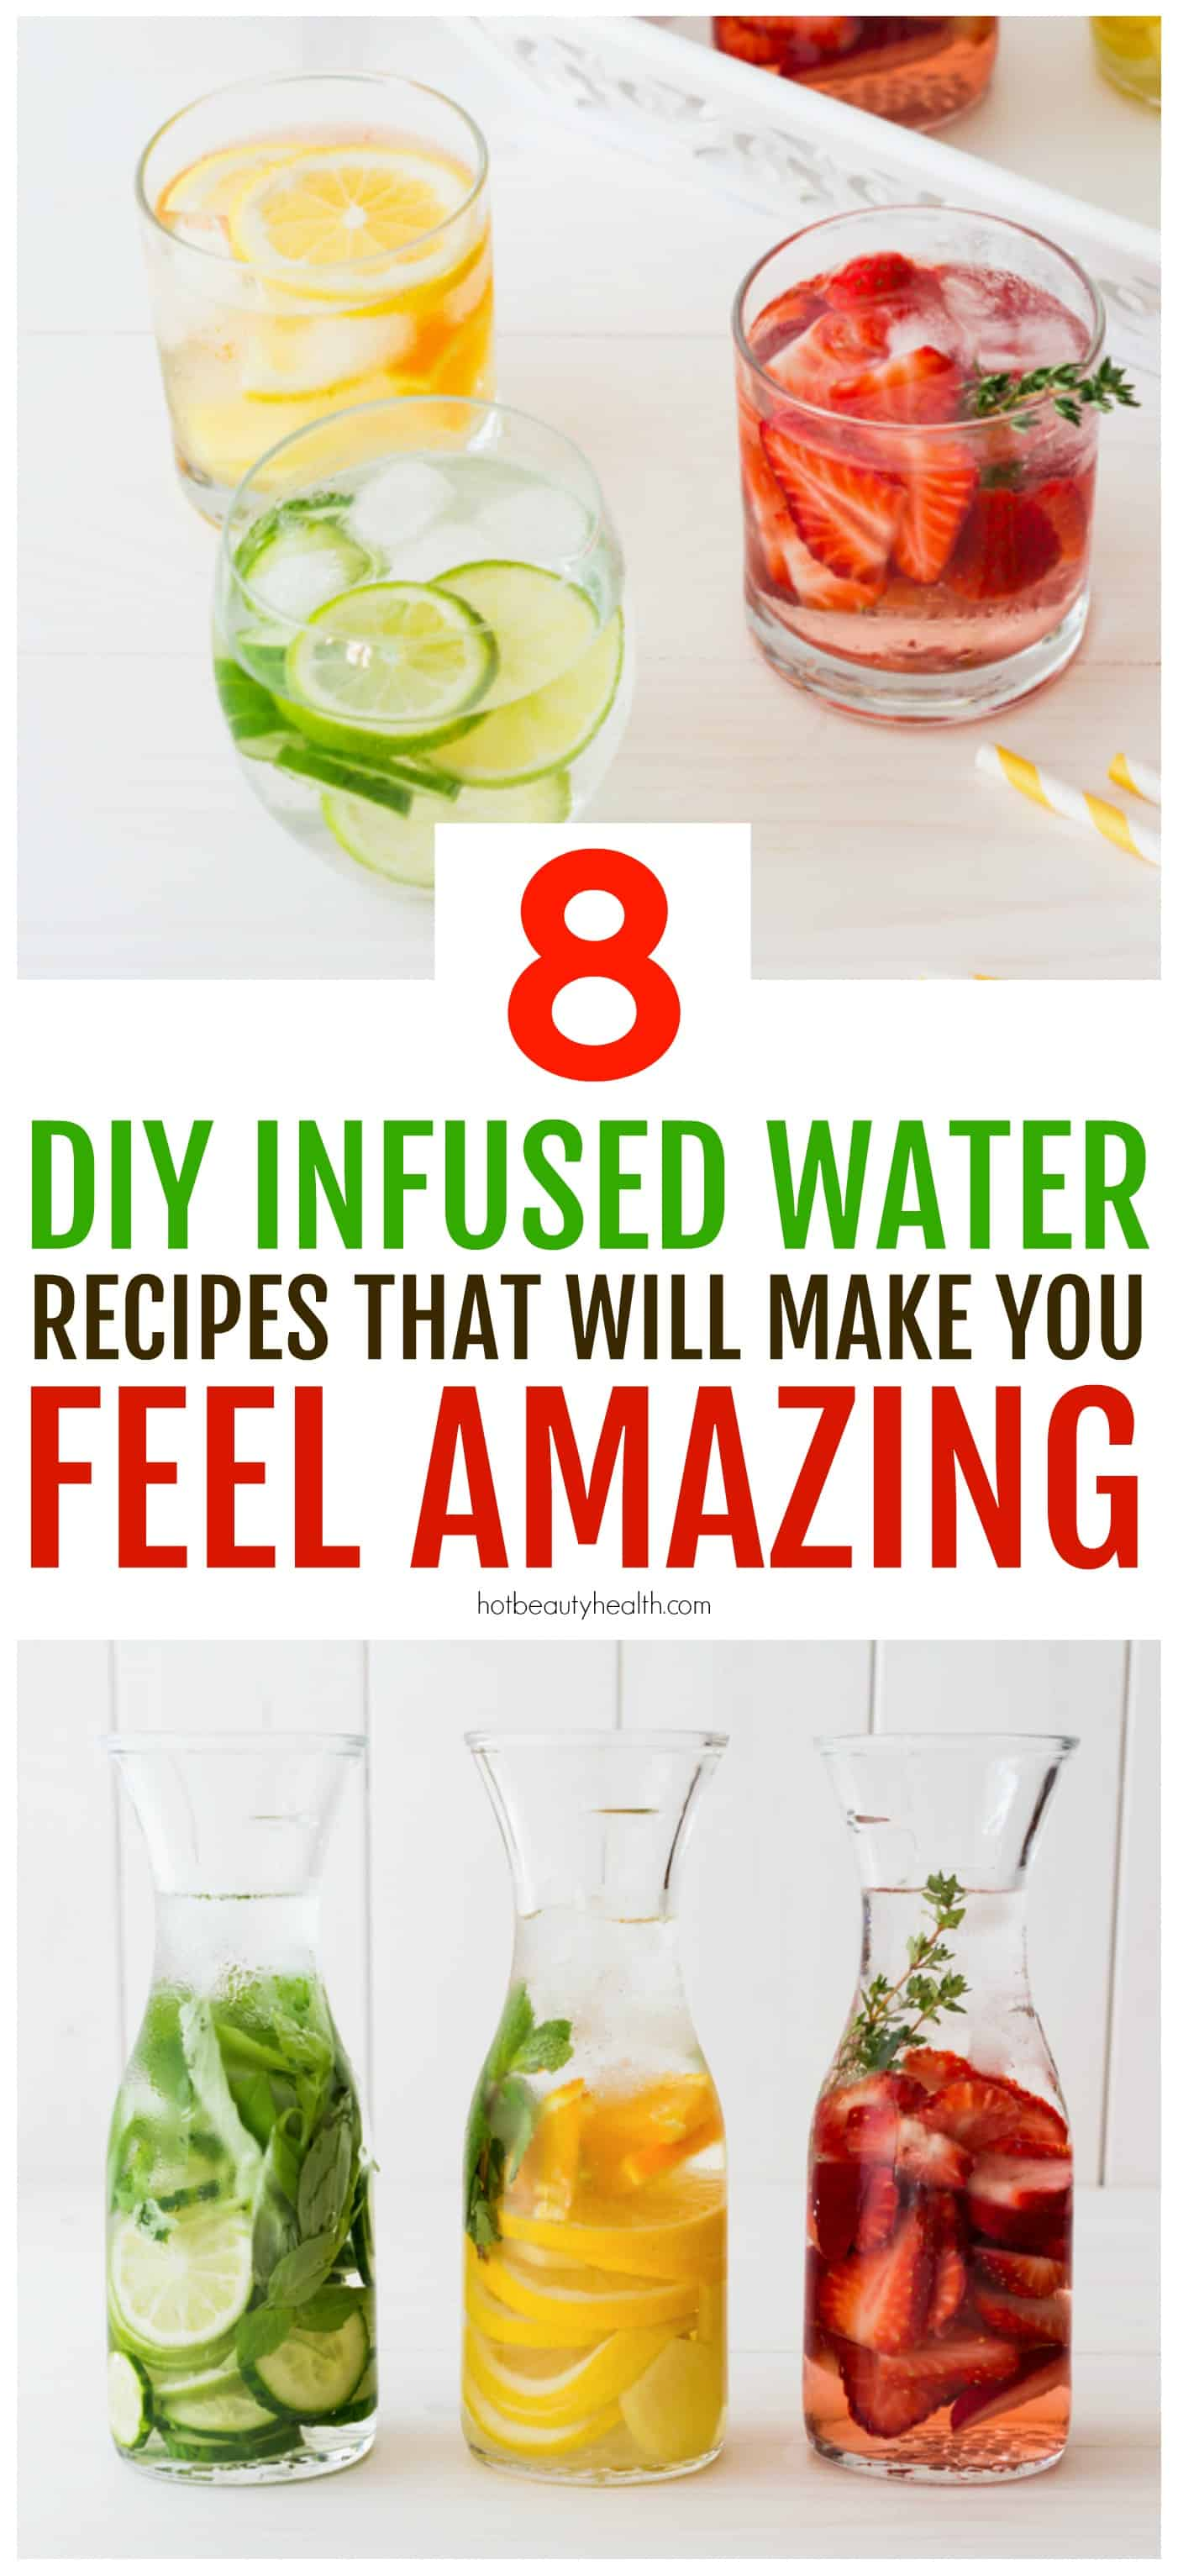 diy infused water